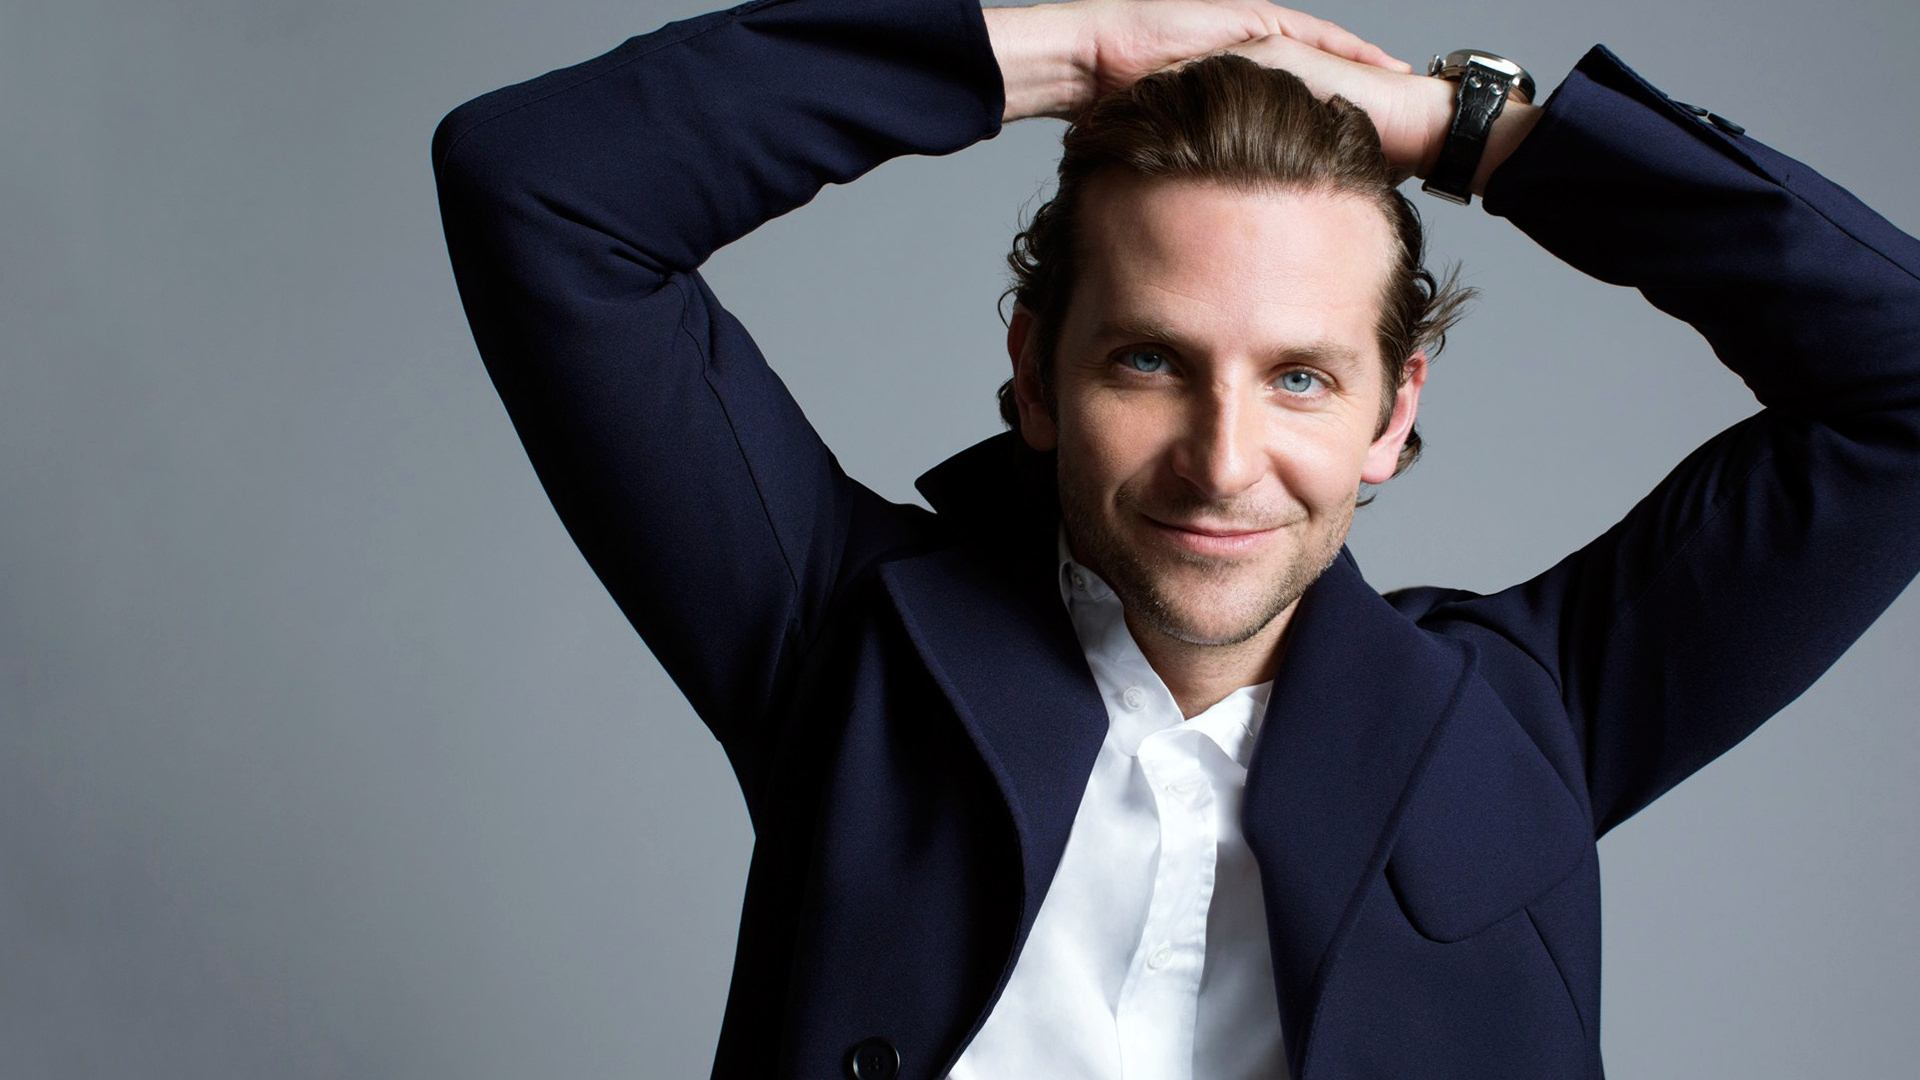 Bradley Cooper Wallpapers High Resolution and Quality Download Bradley Cooper Movies